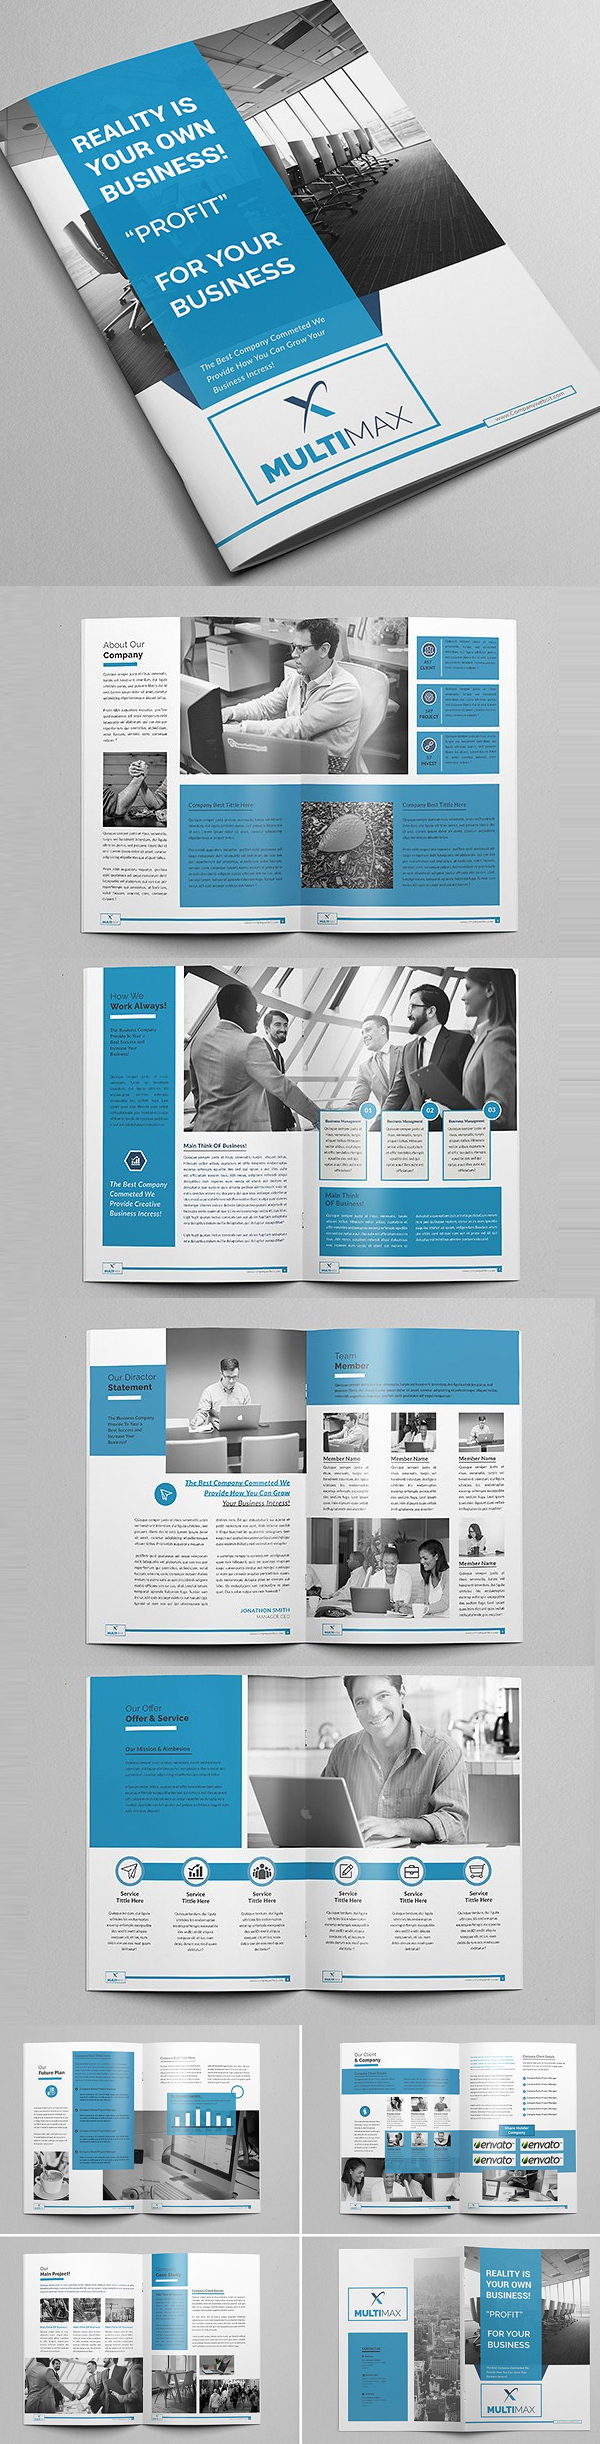 brochure for web design company - new brochure templates catalog design design graphic